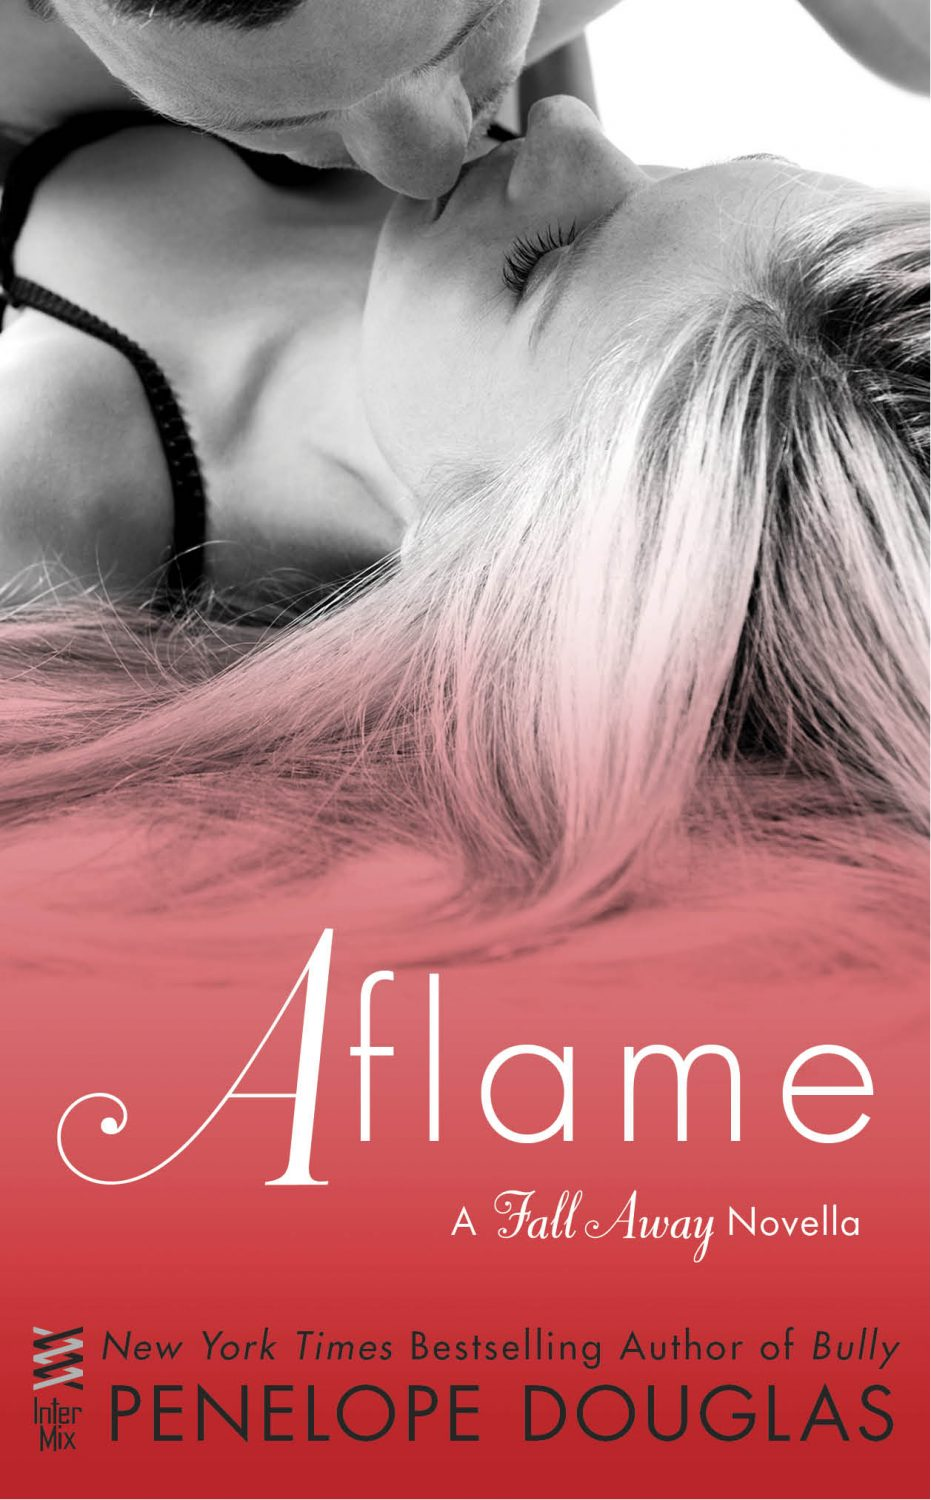 In Review: Aflame (Fall Away #4) by Penelope Douglas